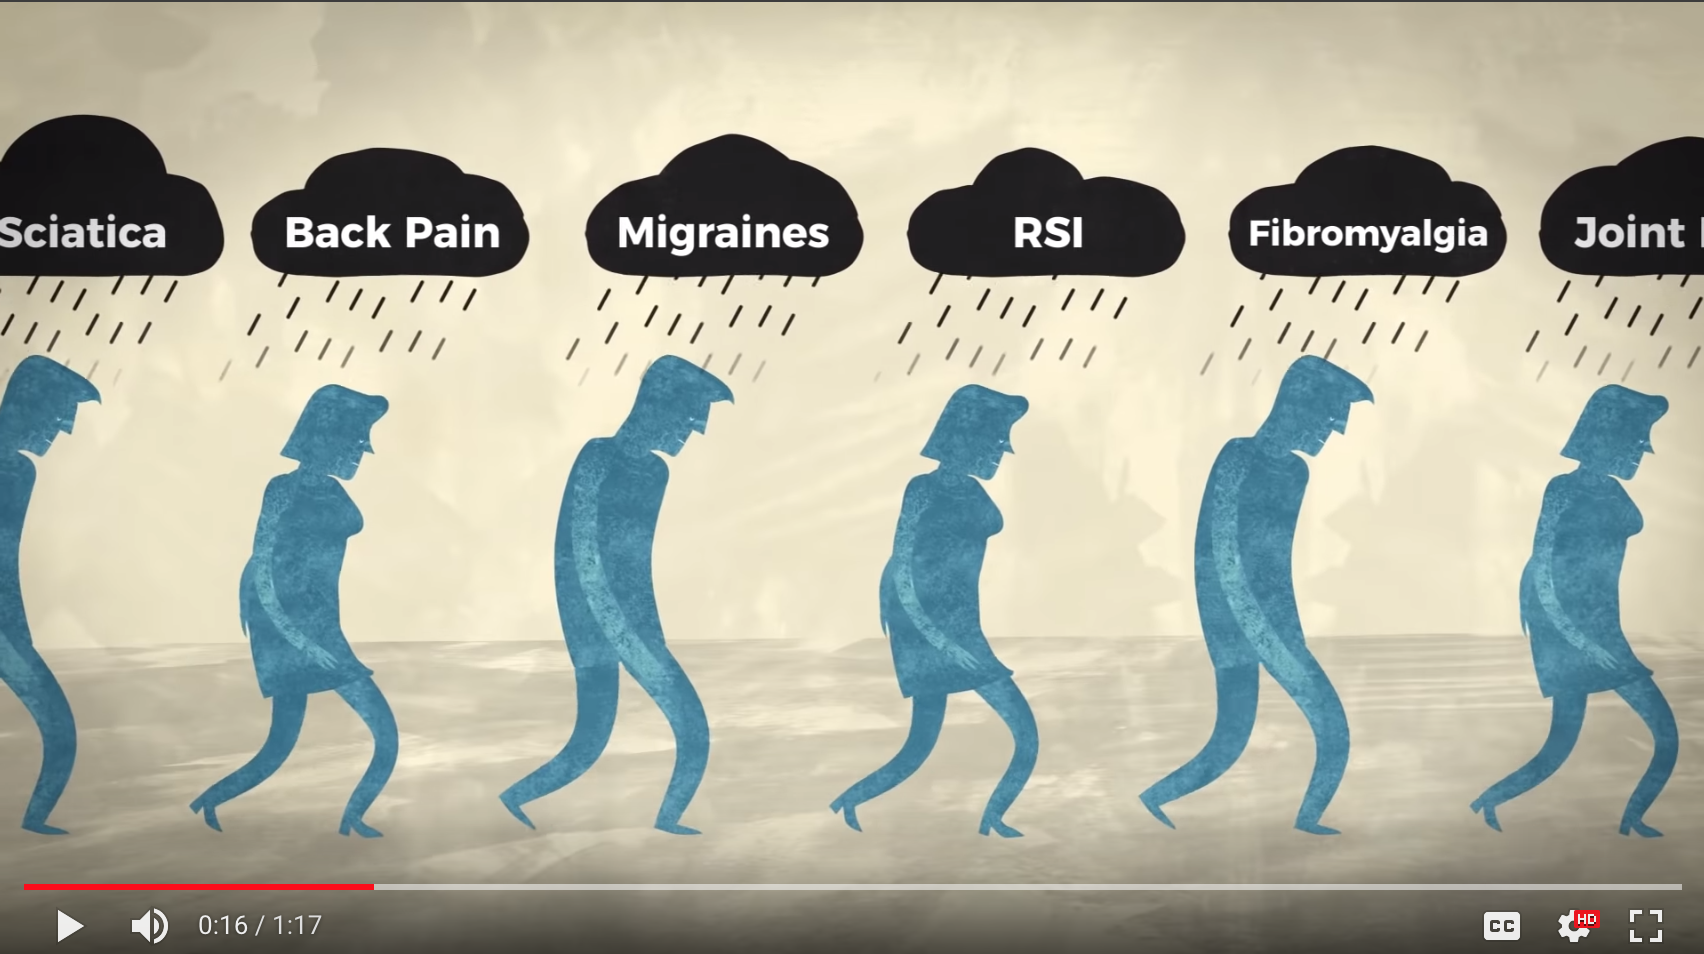 Shows figures walking under storm clouds with the words sciatica, back pain, migraines